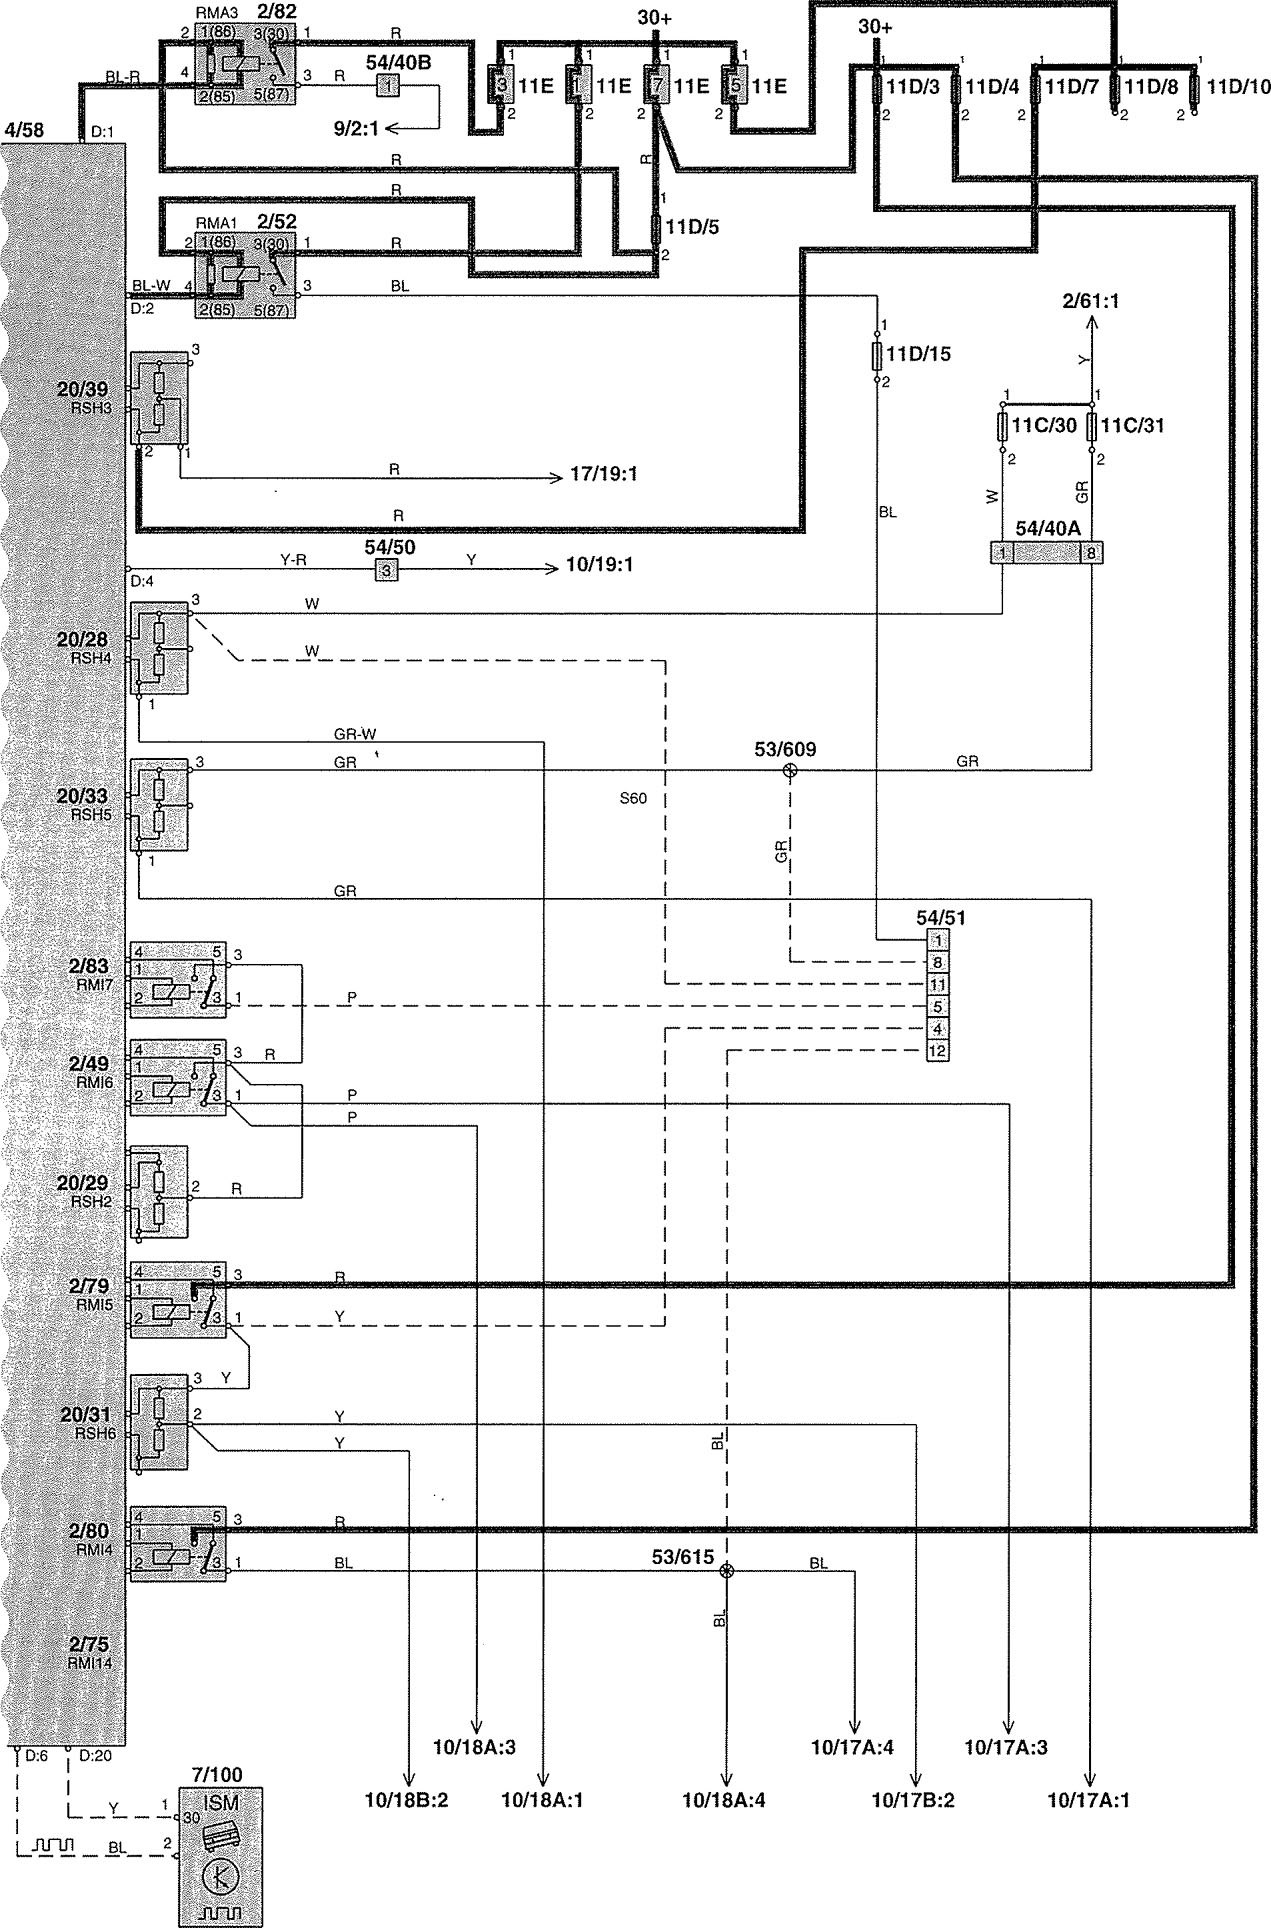 Wire Diagram 99 Volvo V70 Free Wiring For You 2002 S80 Engine Diagrams Power Distribution Motor